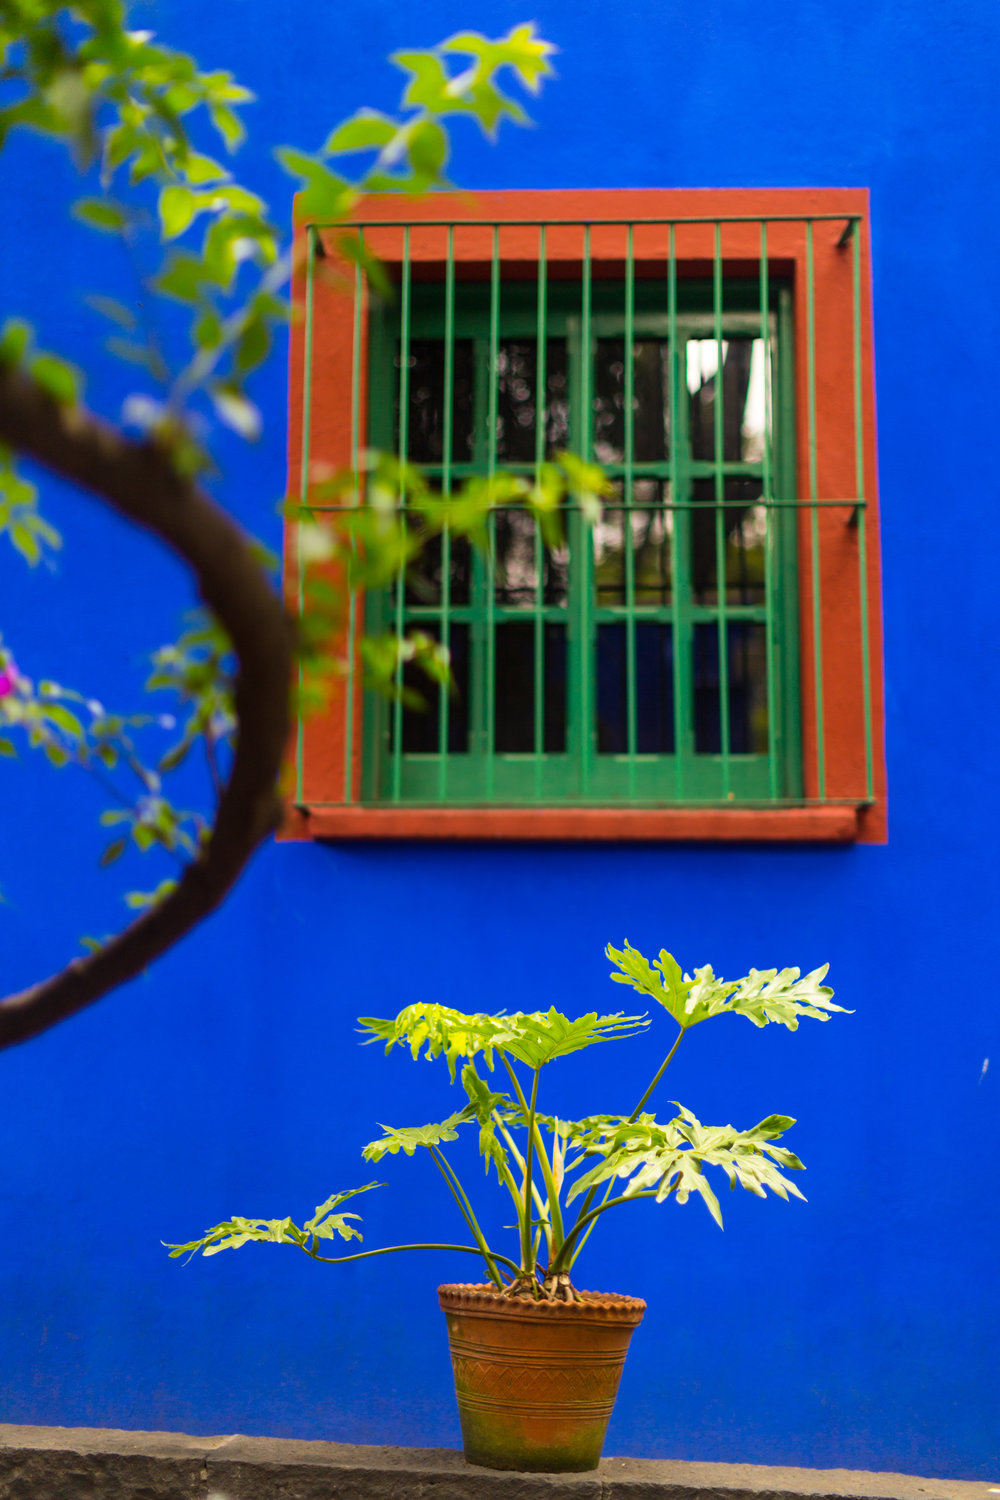 Mexico City Frida Kahlo La Casa Azul-6.jpg